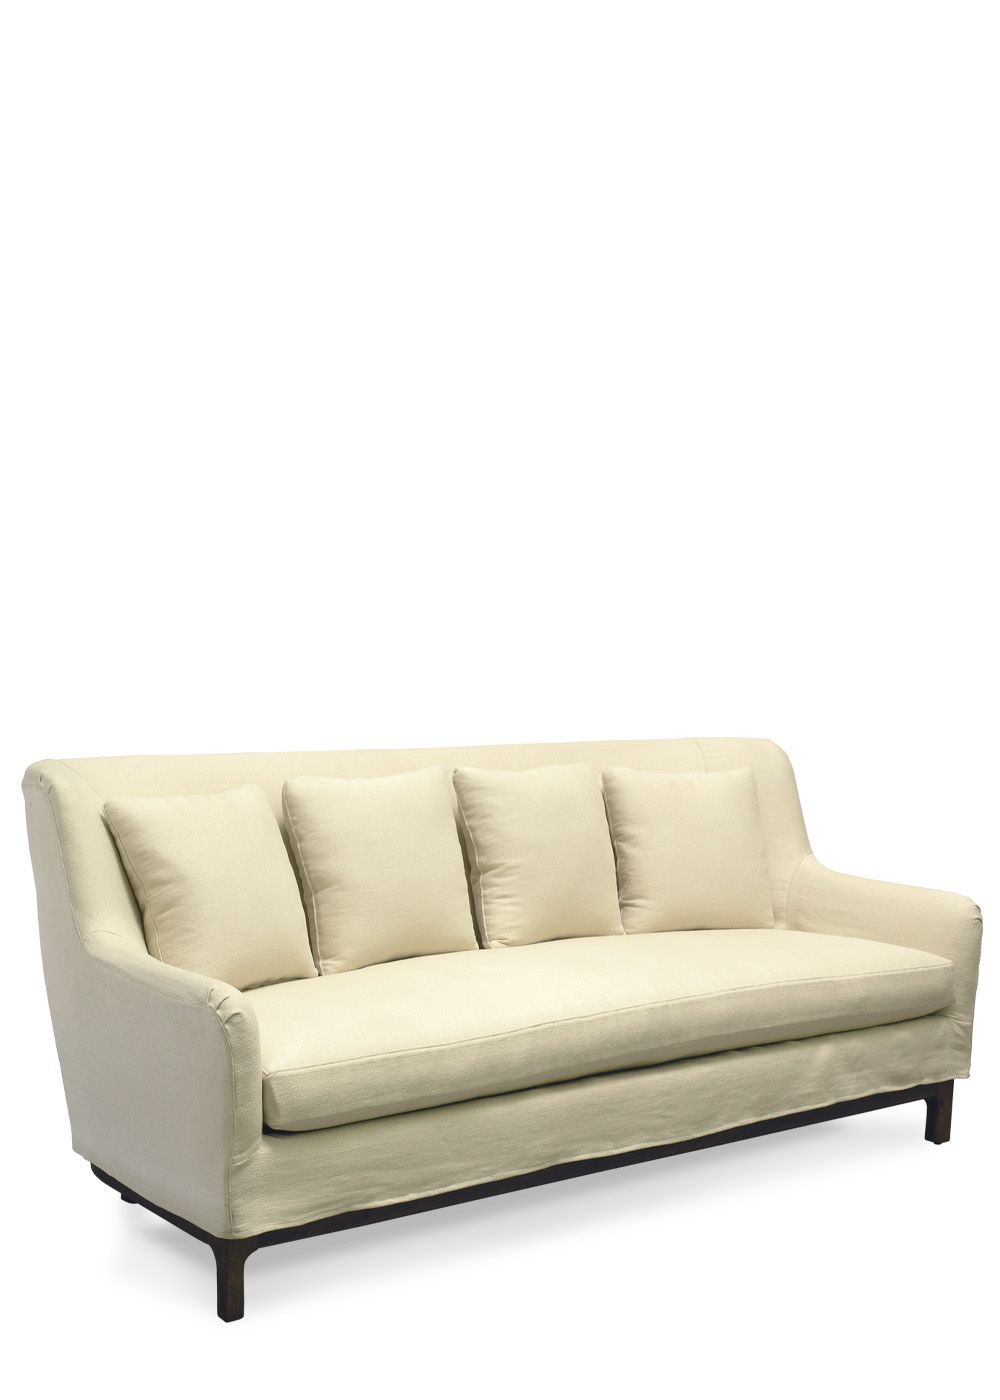 Sofa Settee Couch Sofas Sofa Couch Bed Cushions On Sofa